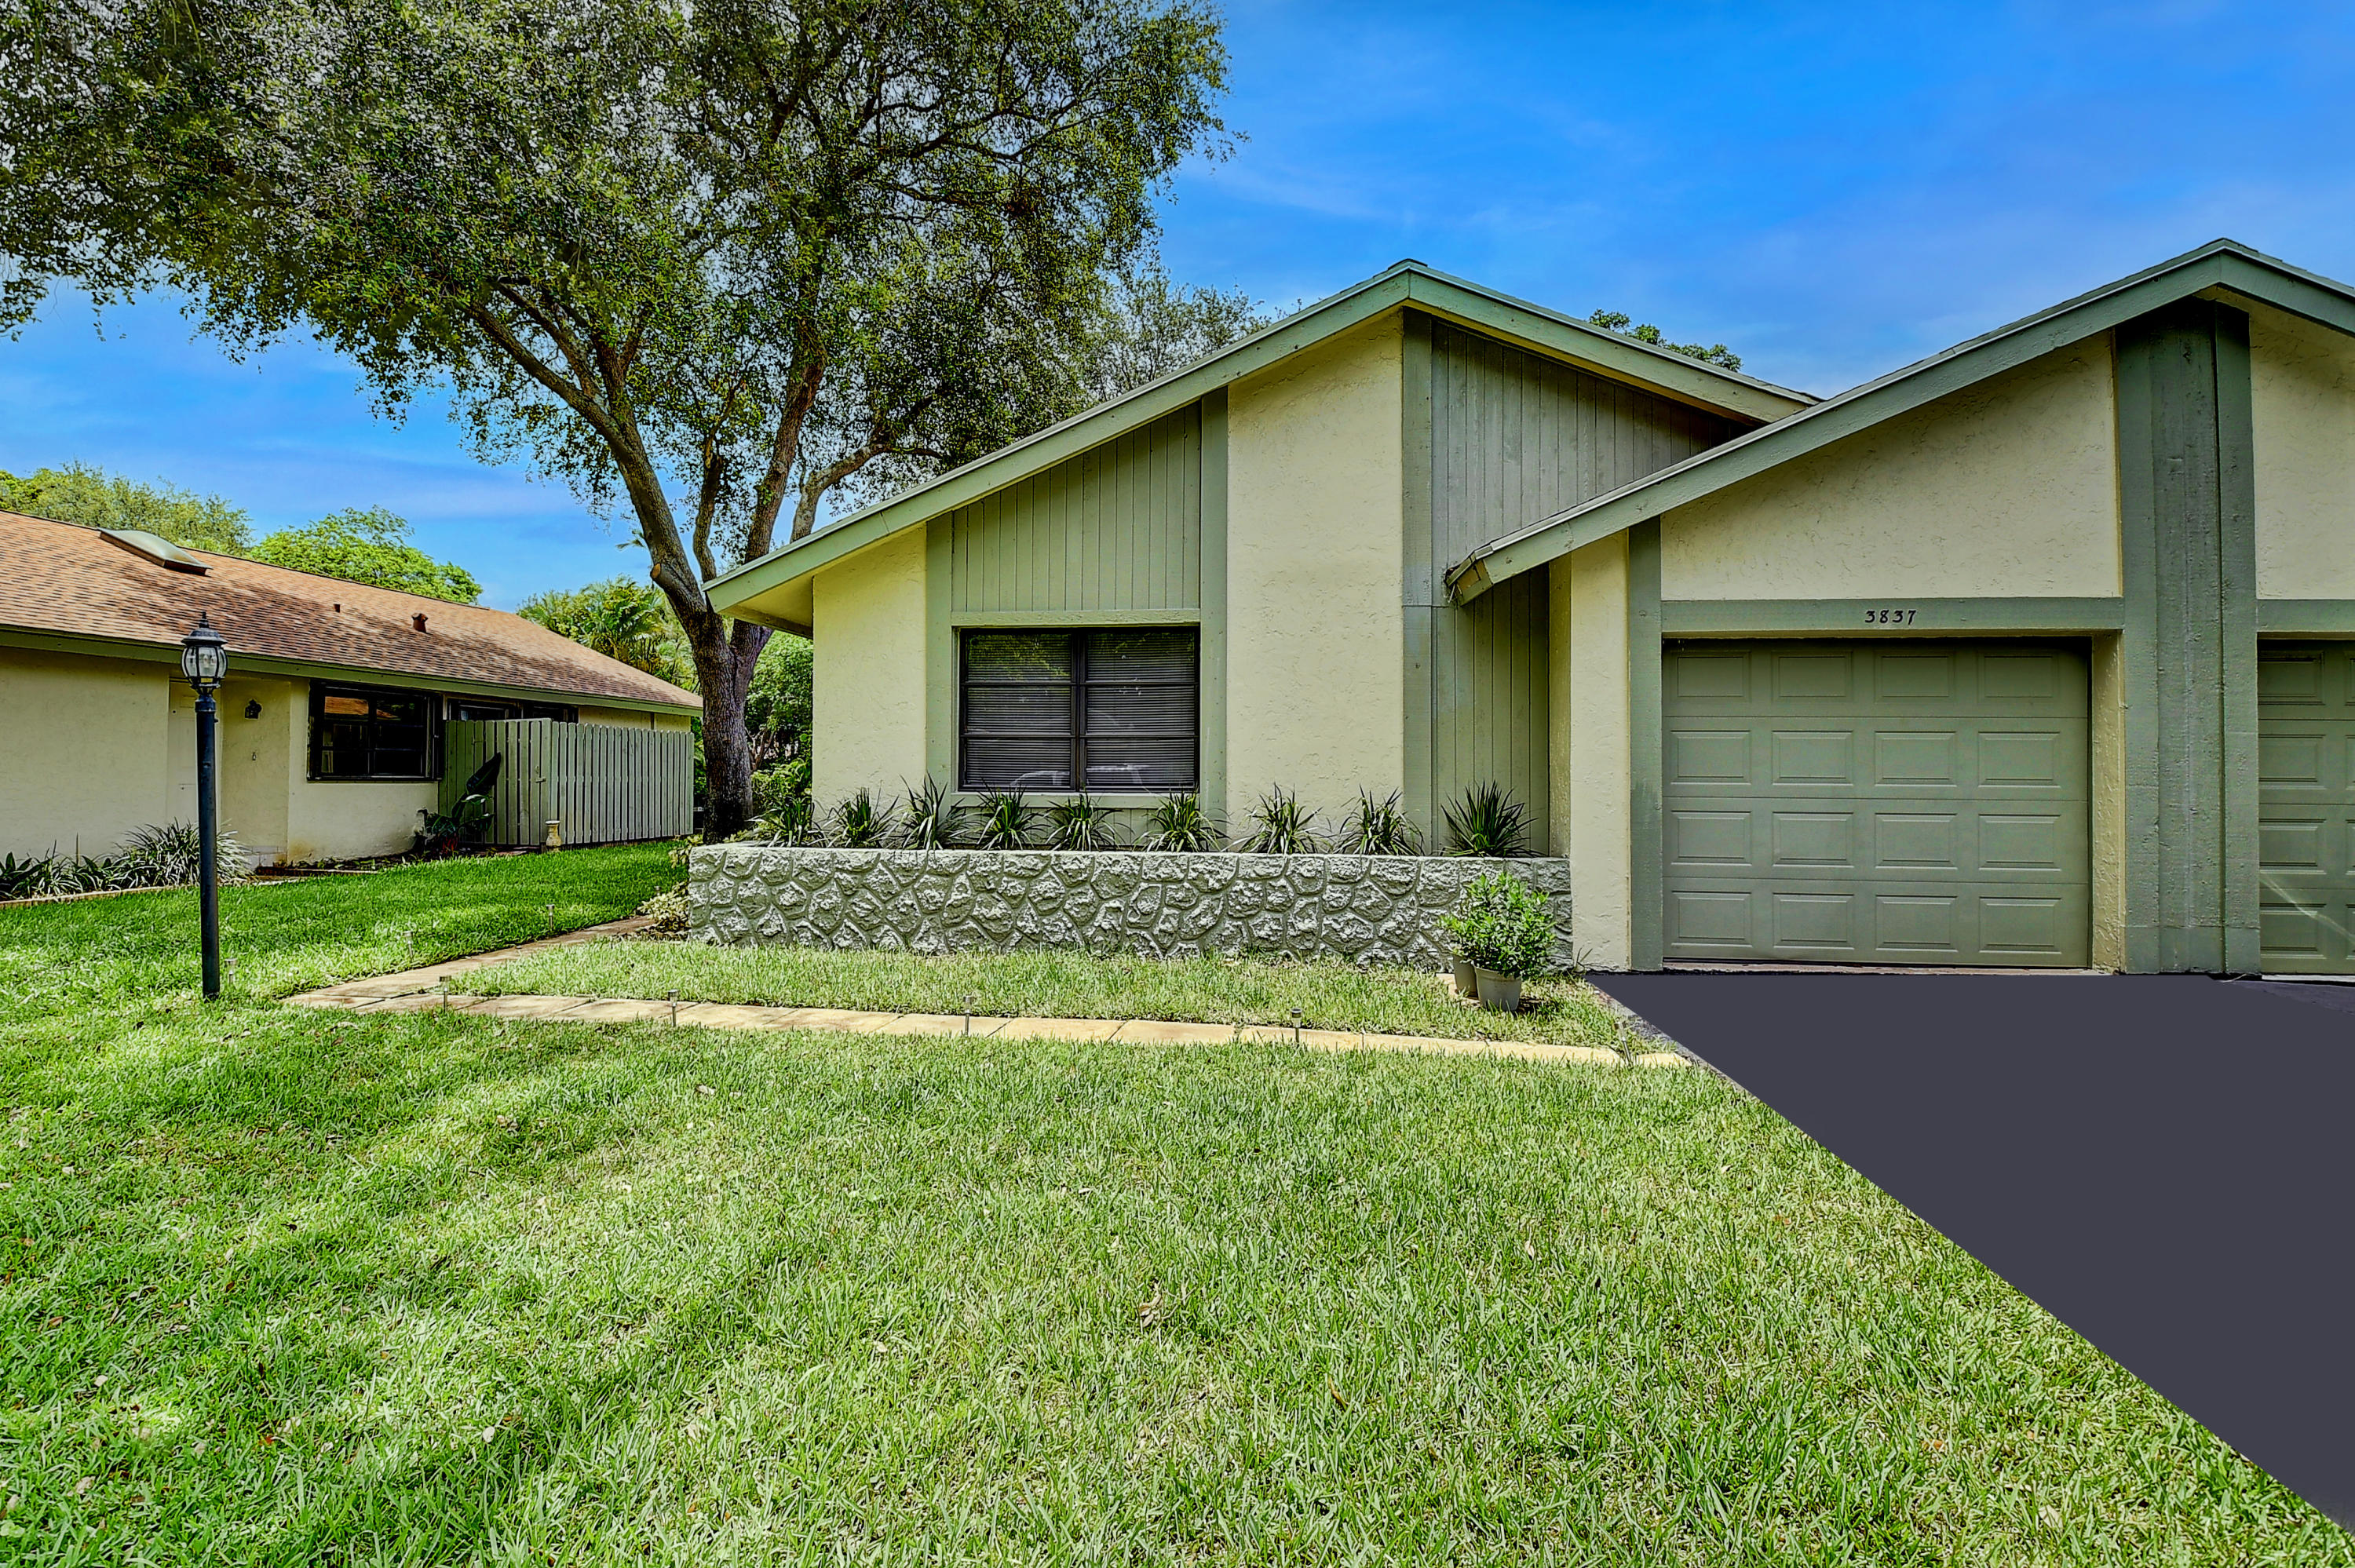 Details for 3837 Arelia Drive, Delray Beach, FL 33445